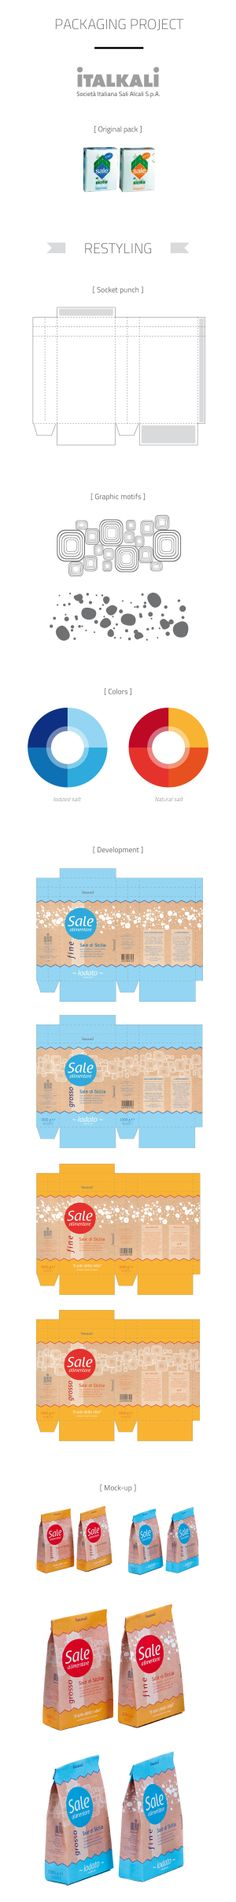 """Project about the packaging redesign of food industry, in the specific case of the """"Italkali"""" salt."""